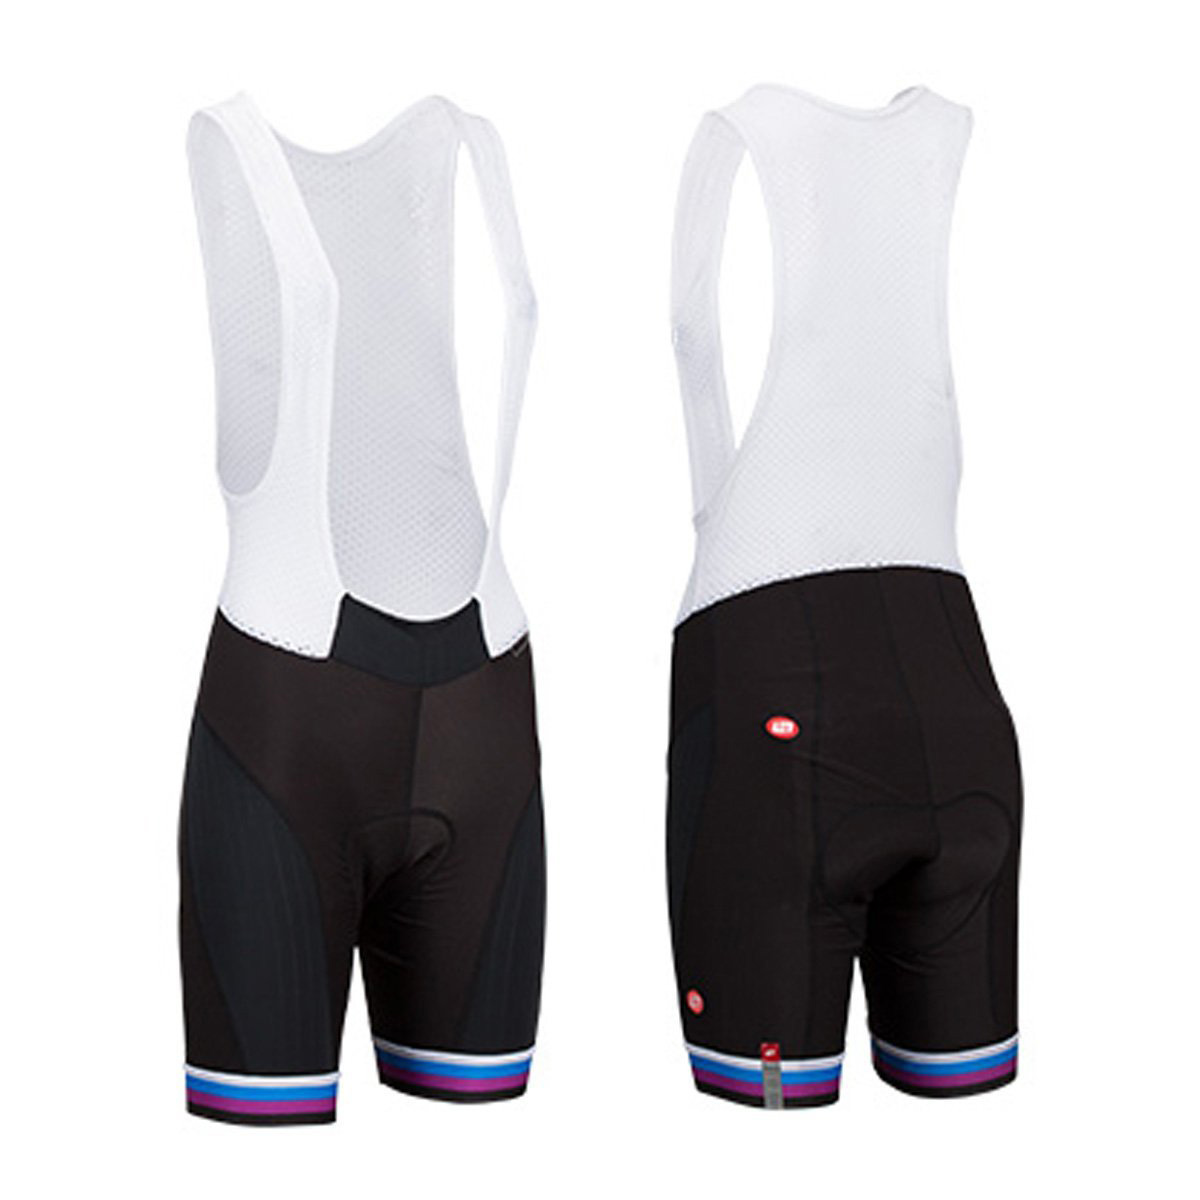 Bellwether Forza Women s Road Cycling Bib Shorts Multi-Color Medium ... 6b92adc2c